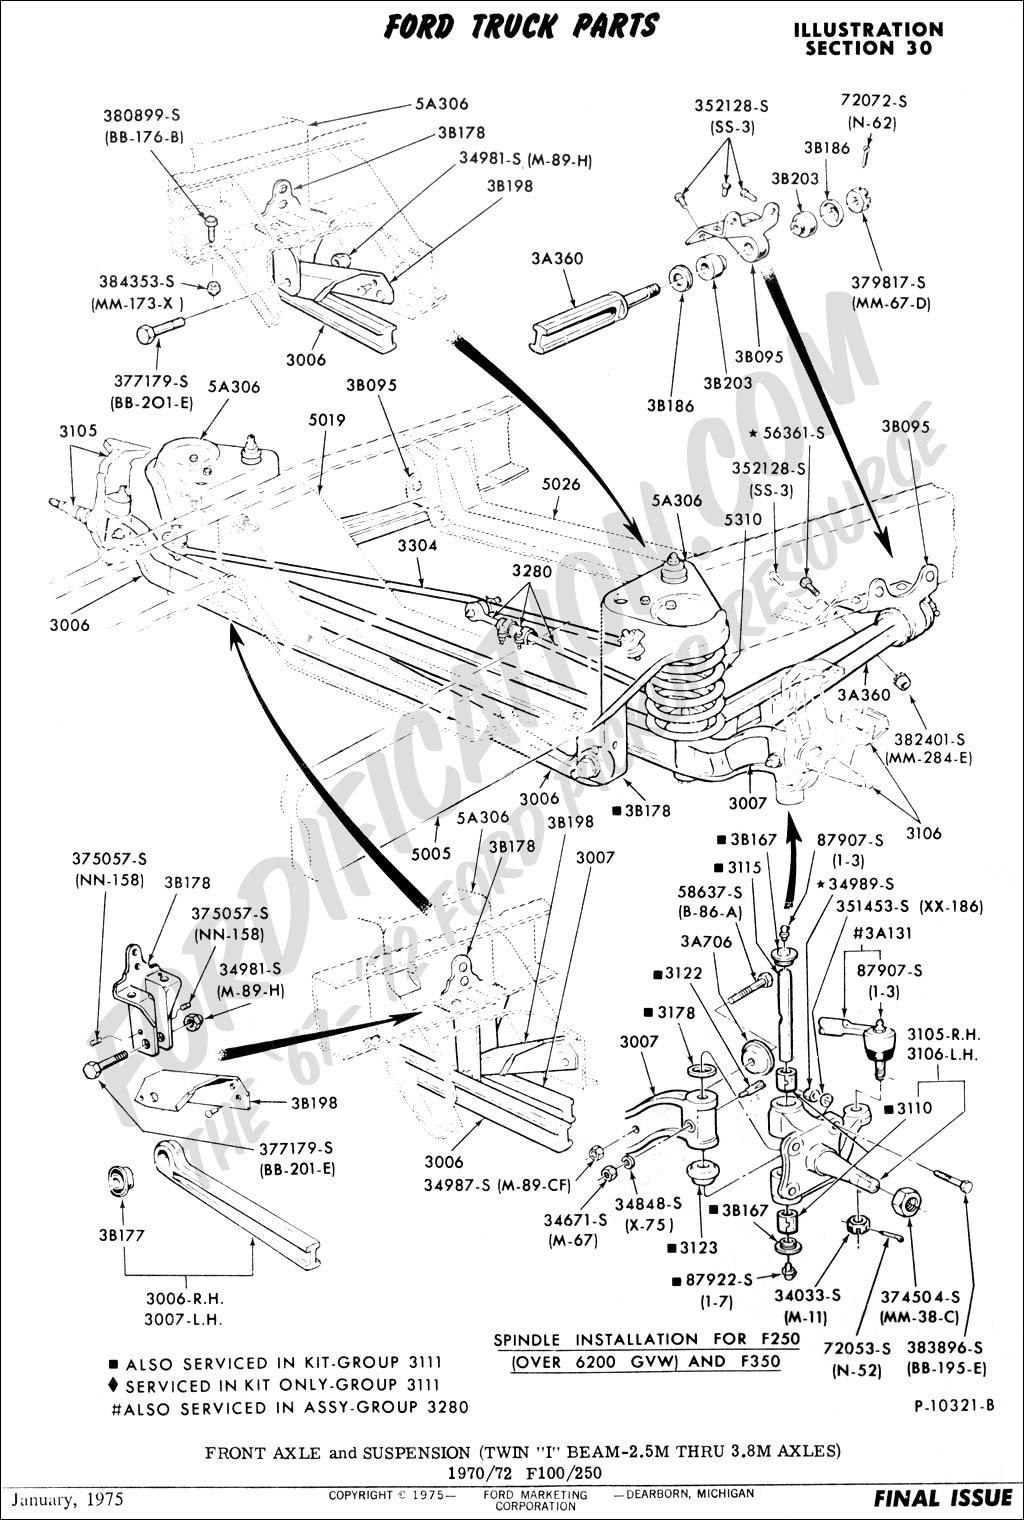 Ford F 250 Front Suspension Diagram Schematics Fuse Box 2002 Sel Truck Technical Drawings And Section A Panel